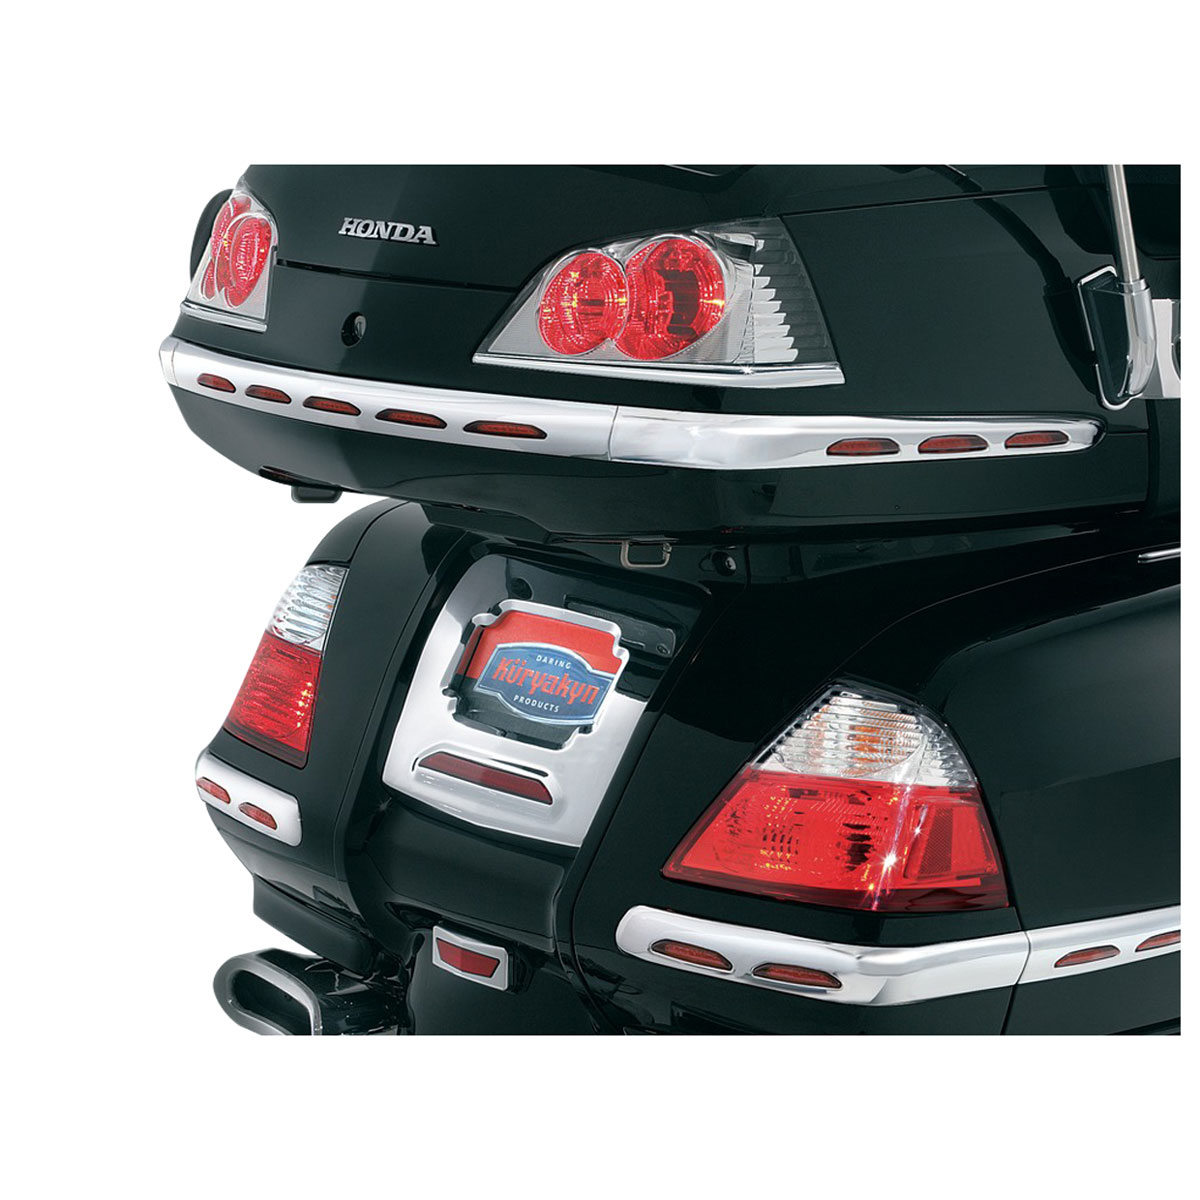 Kuryakyn Trunk Taillight Accents for GL1800 Gold Wing